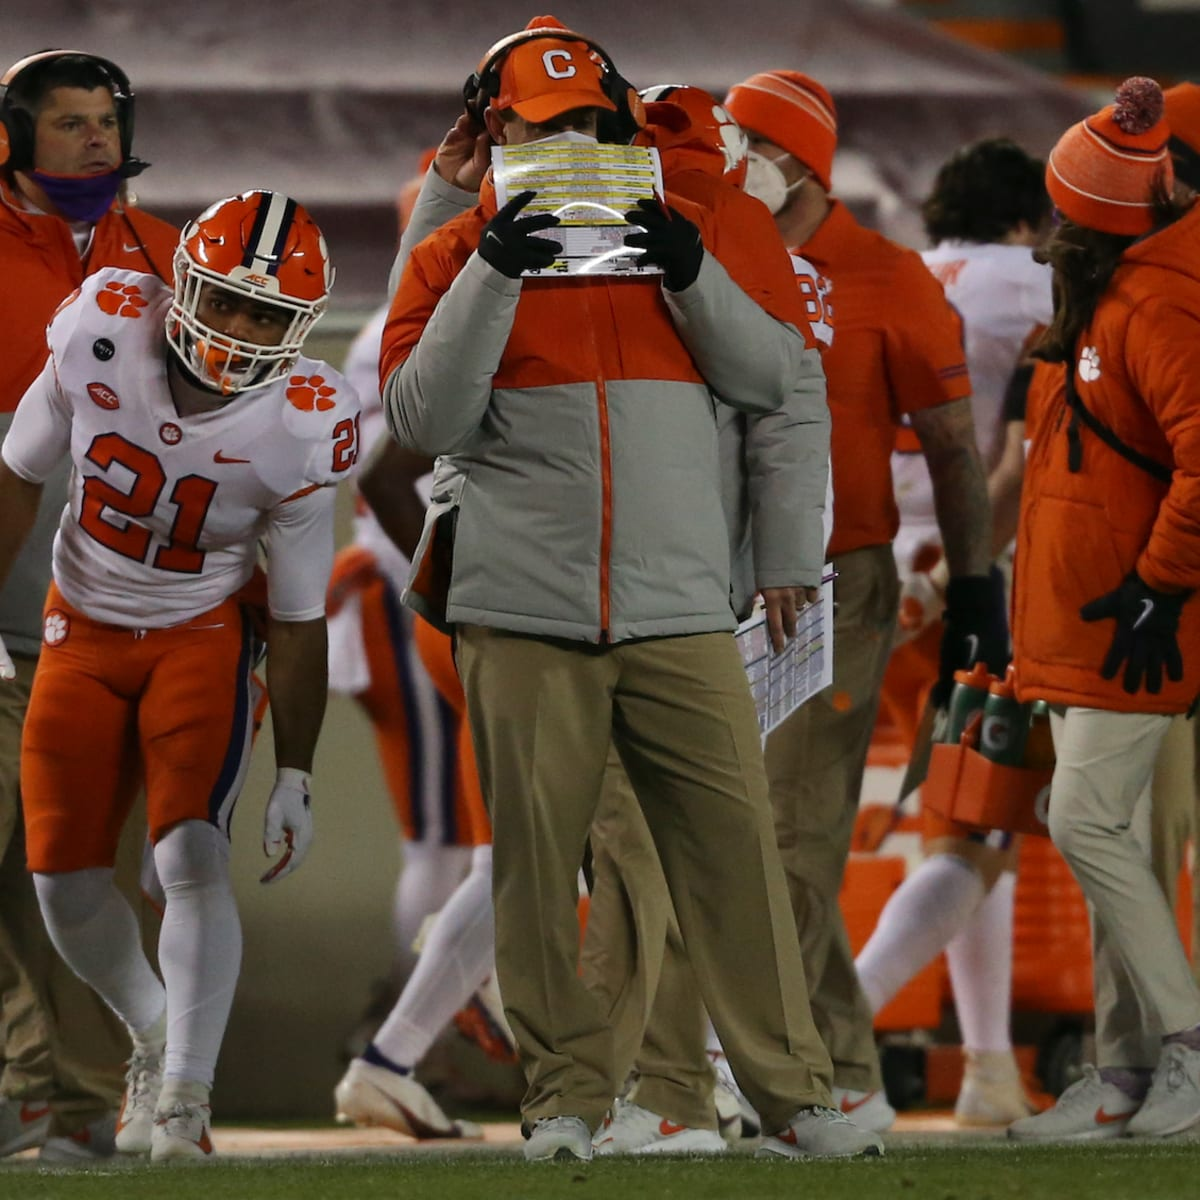 Clemson S Swinney Updates Injuries To James Skalski Other Tigers After Virginia Tech Win Sports Illustrated Clemson Tigers News Analysis And More